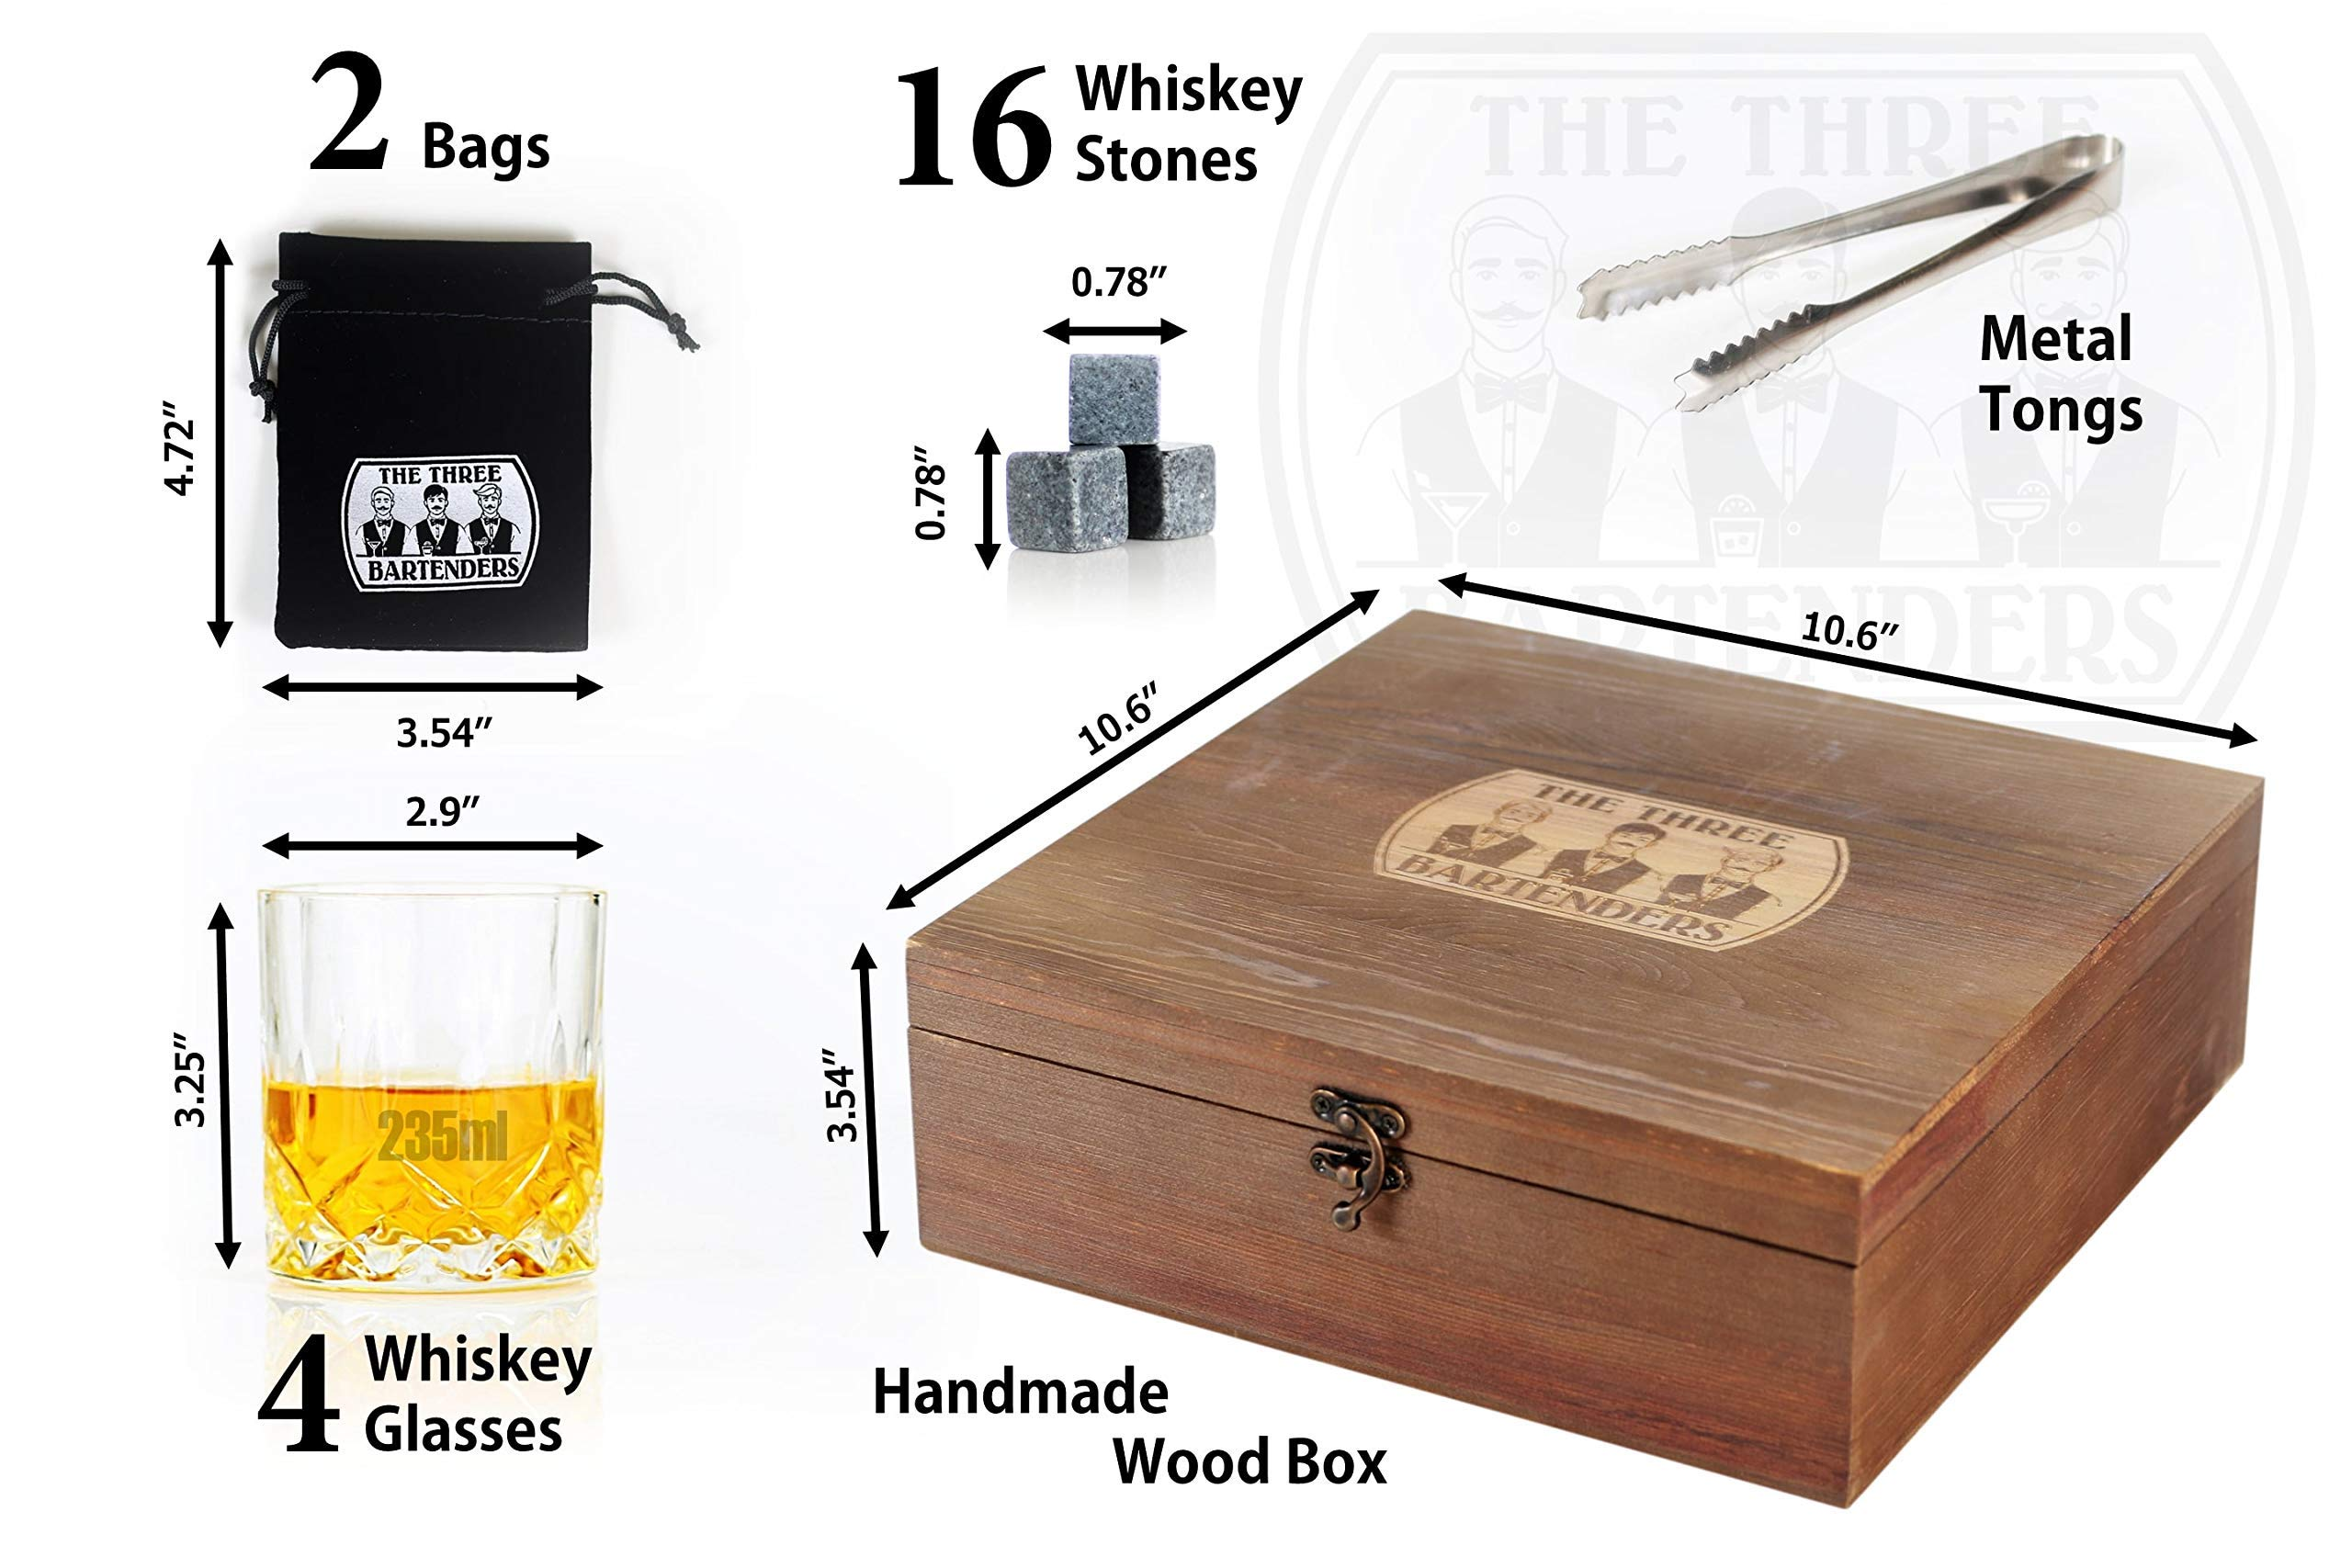 Whiskey Glasses and Stones Gift Set in Premium Wooden Presentation Box - 4 Extra Large Glasses, 16 Chilling Stones, Ideal Gift for Men, Fathers Day, Brother Gift (7.7) by The Three Bartenders (Image #5)